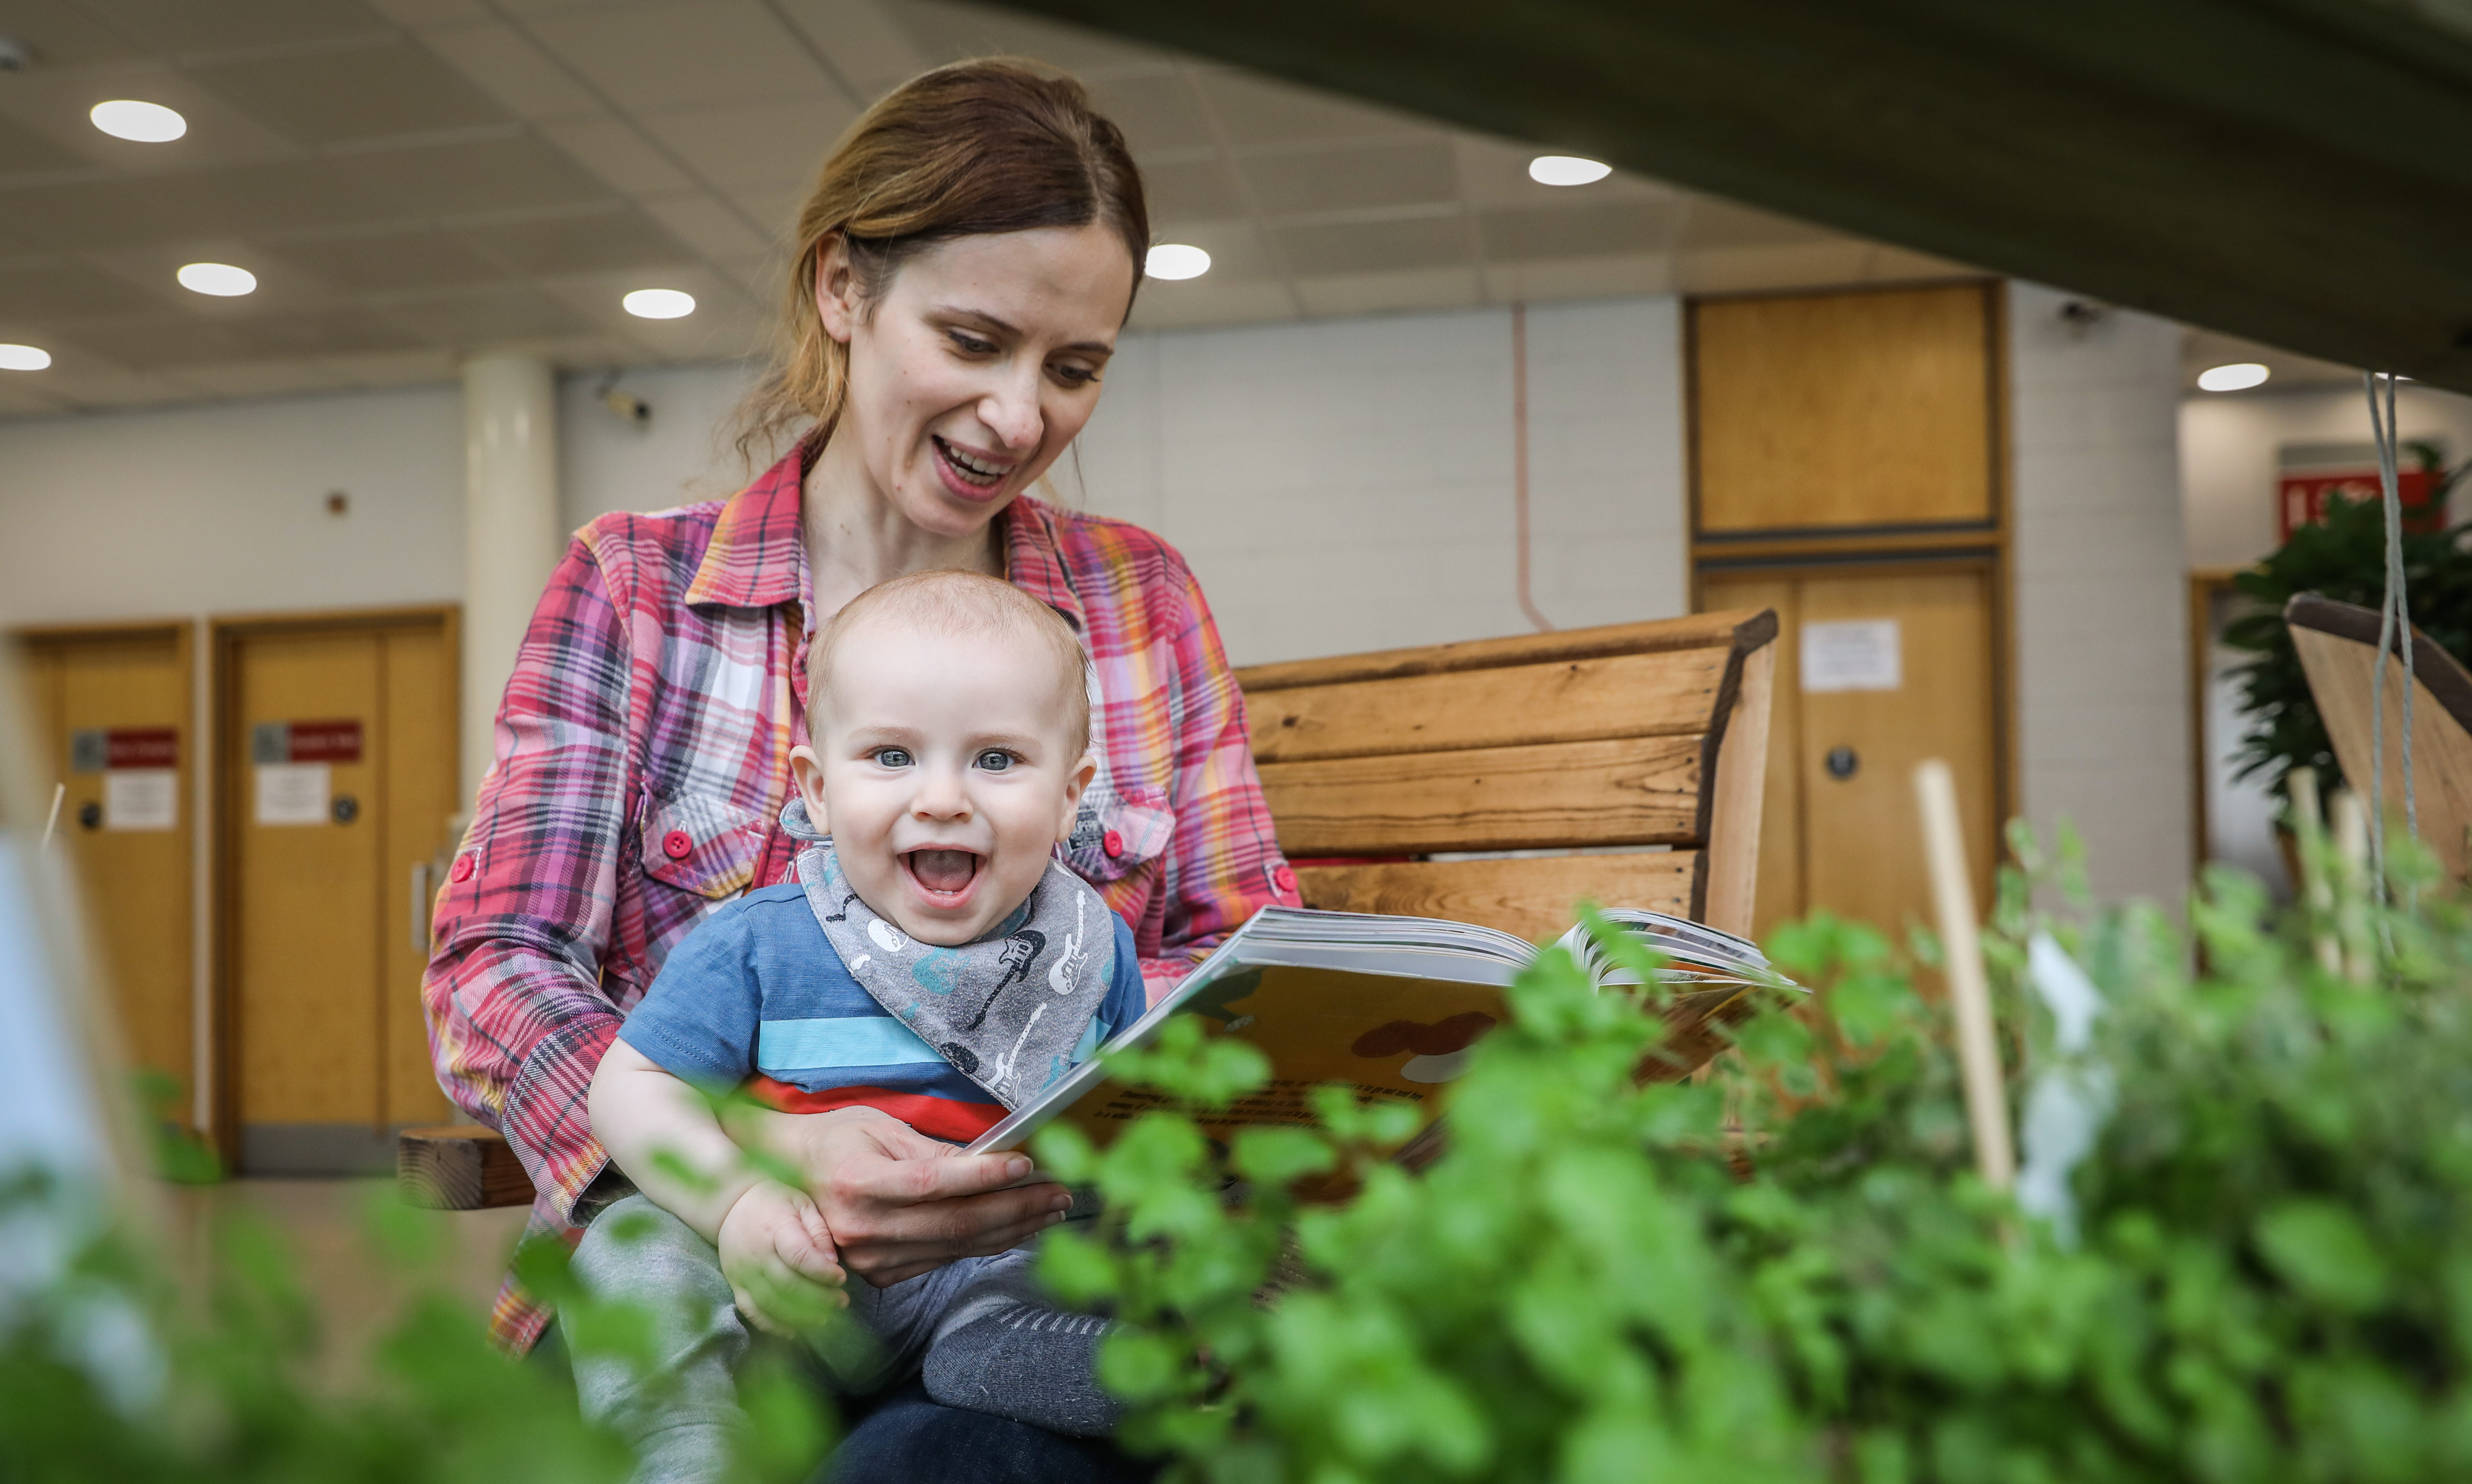 Dundee Central Library has officially launched its Wellbeing Garden with a special Bookbug rhymetime session for babies, parents and carers. The indoor garden has artificial grass, comfortable garden furniture and glass ceiling giving the feeling of being outdoors and is perfect for meeting up with friends, groups or simply relaxing with a good book. Picture shows; Kamila Brady, with son Sebastian, 7 and a half months, reads a book in amongst the new greenery. Picture by Mhairi Edwards/DCT Media